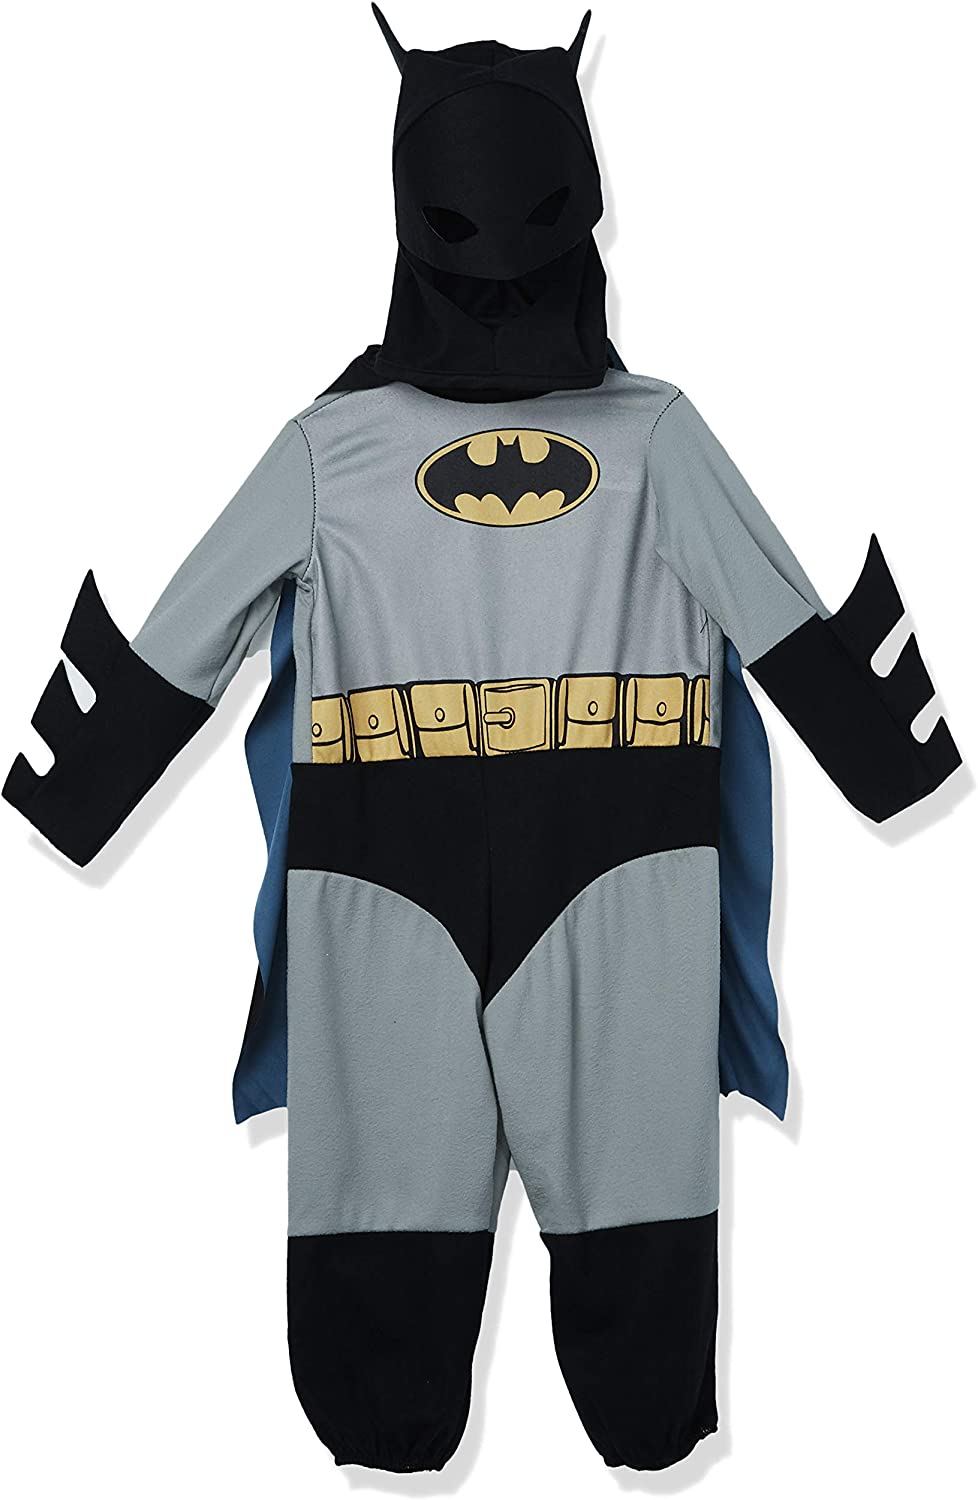 Rubie's Infant Costume Batman Opening Attention brand large release sale